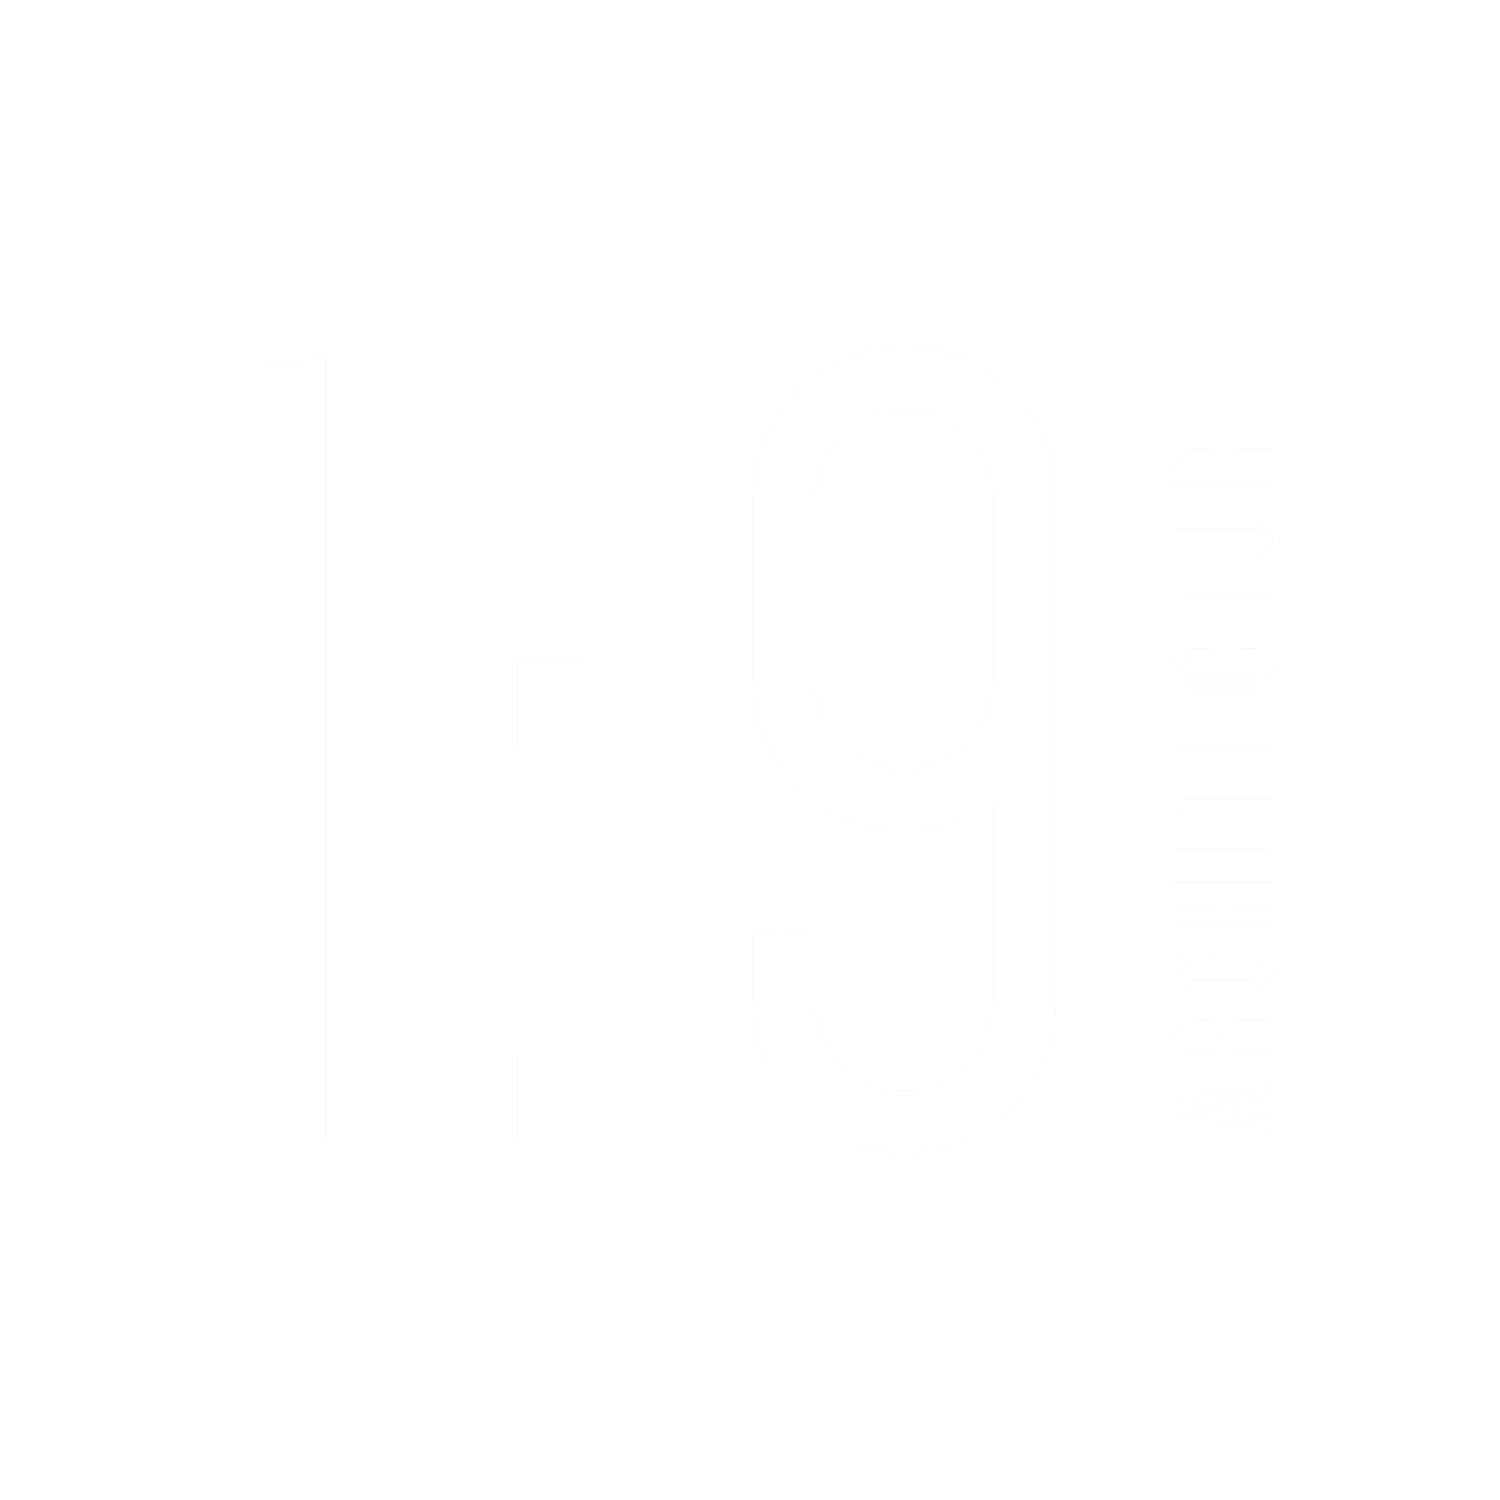 ONE : NINE ARCHITECTURE